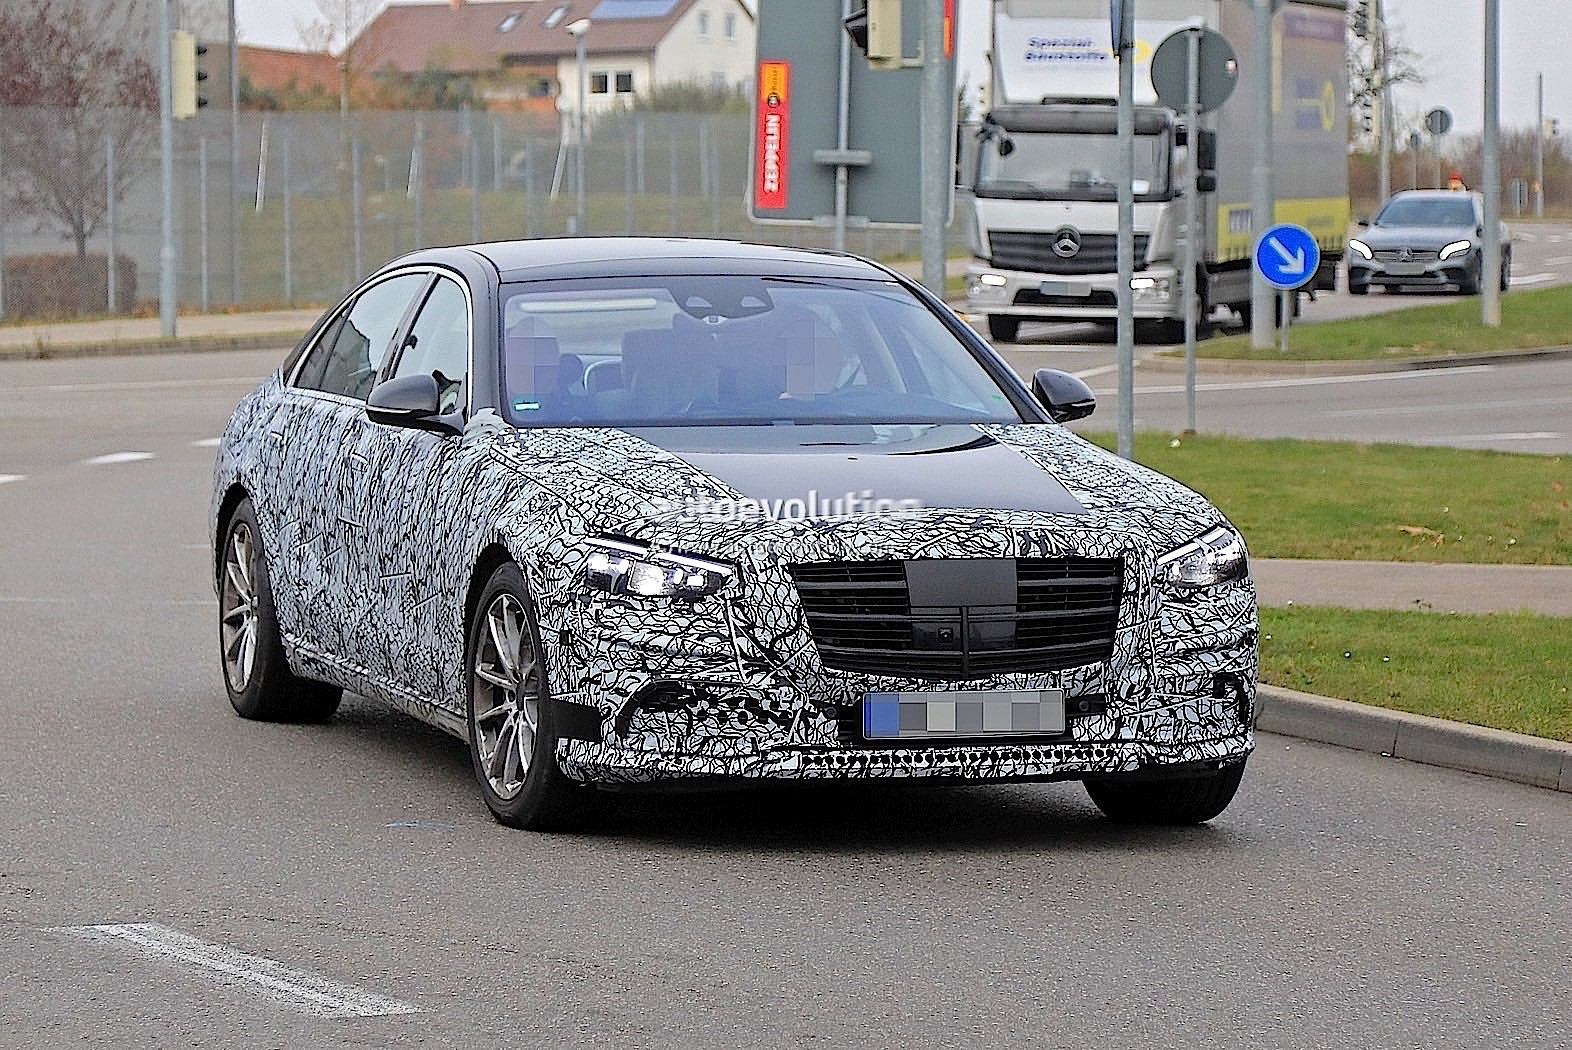 2021 mercedes-benz s-class w223 gets partially leaked